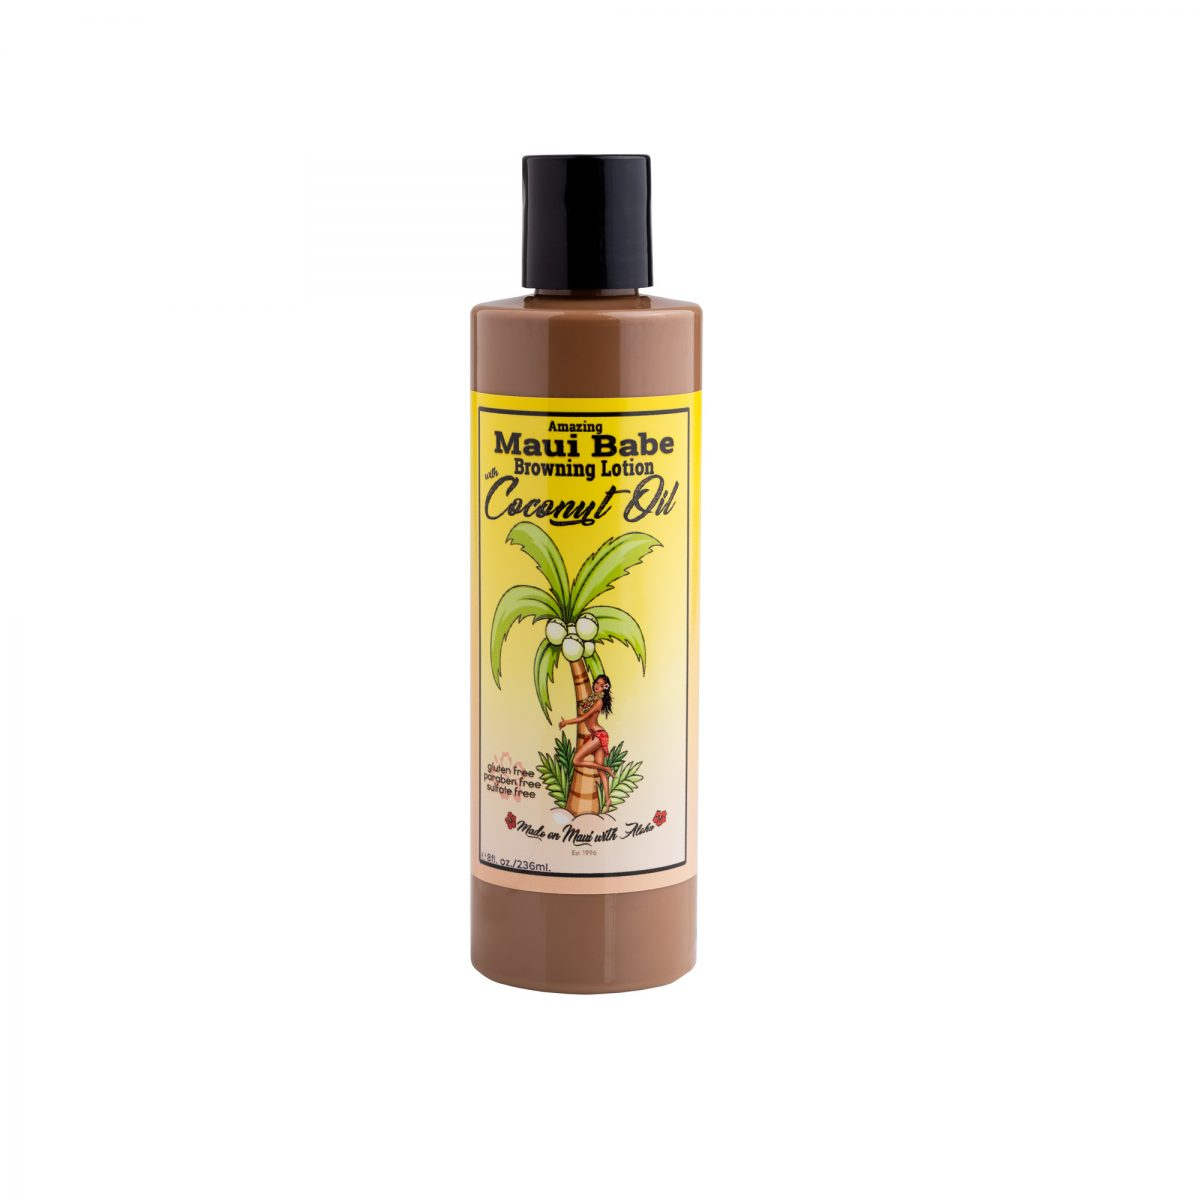 8oz Browning Lotion with Coconut Oil